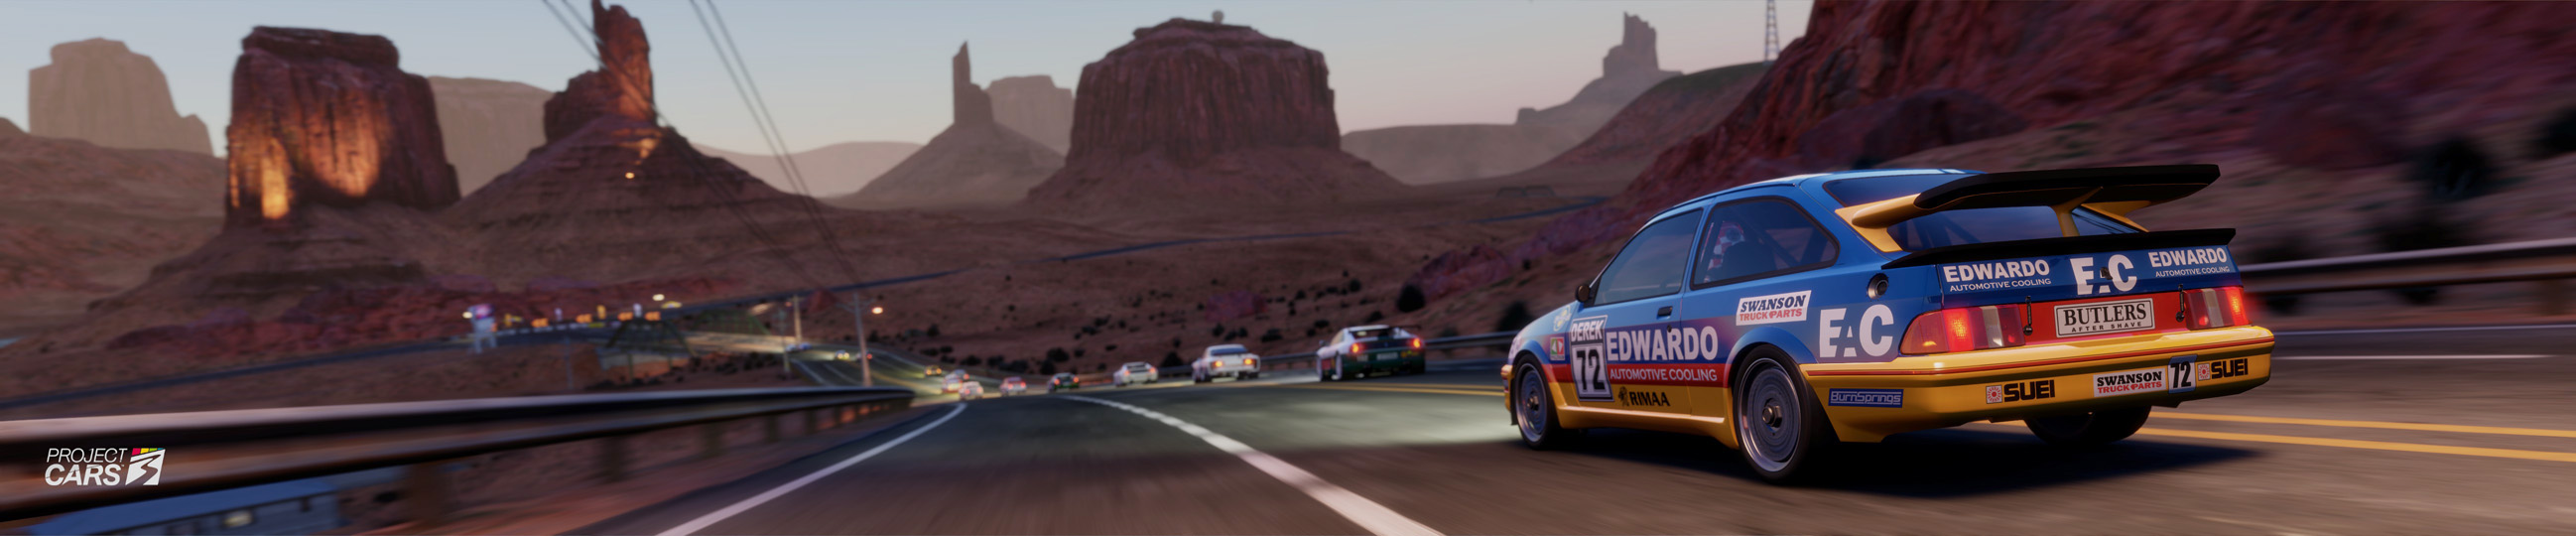 0 PROJECT CARS 3 COSWORTH at MONUMENT CANYON crop copy.jpg